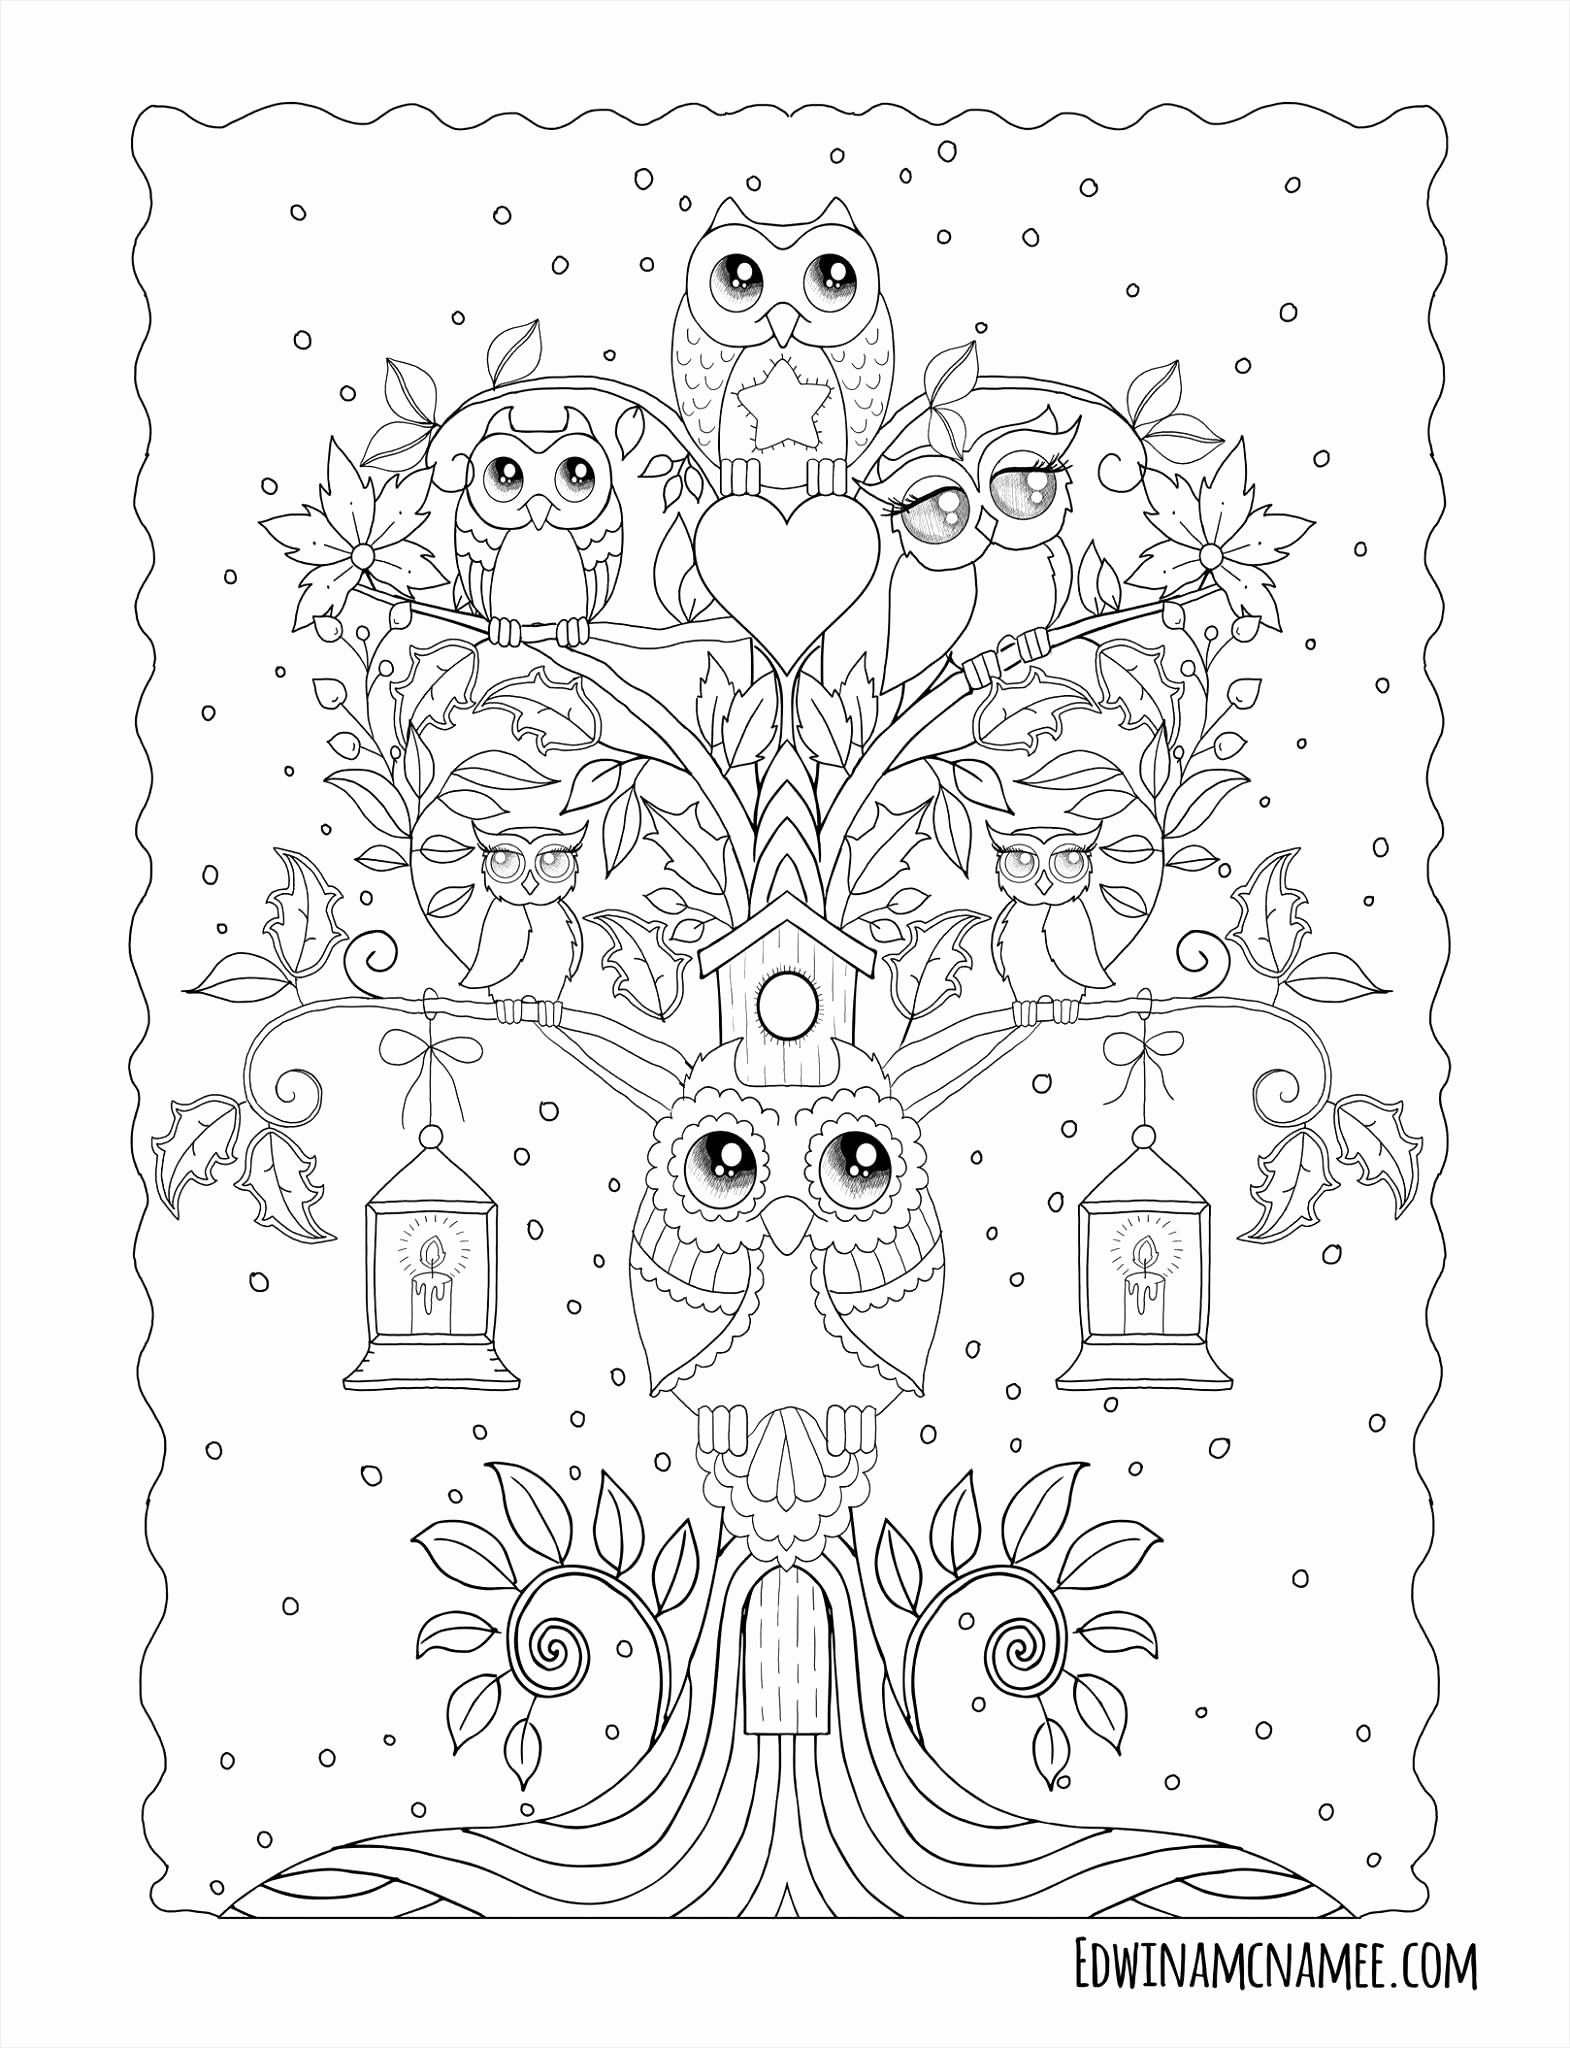 Coloring Pictures Of Baby Animals Awesome Coloring Book Animals Best I Pinimg Originals Designs Coloring Books Pattern Coloring Pages Detailed Coloring Pages